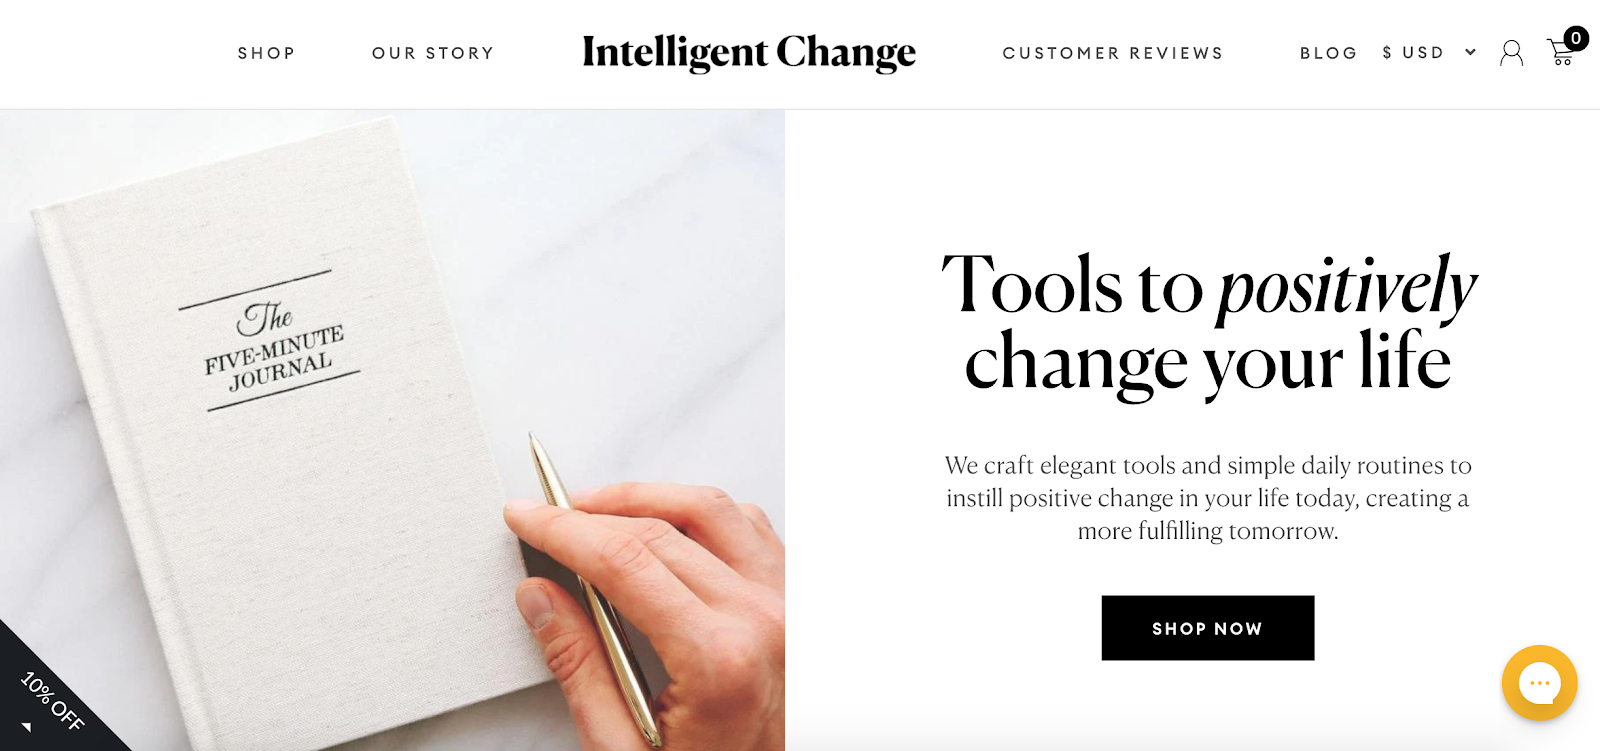 Intelligent Change homepage with The Five Minute Journal in the background